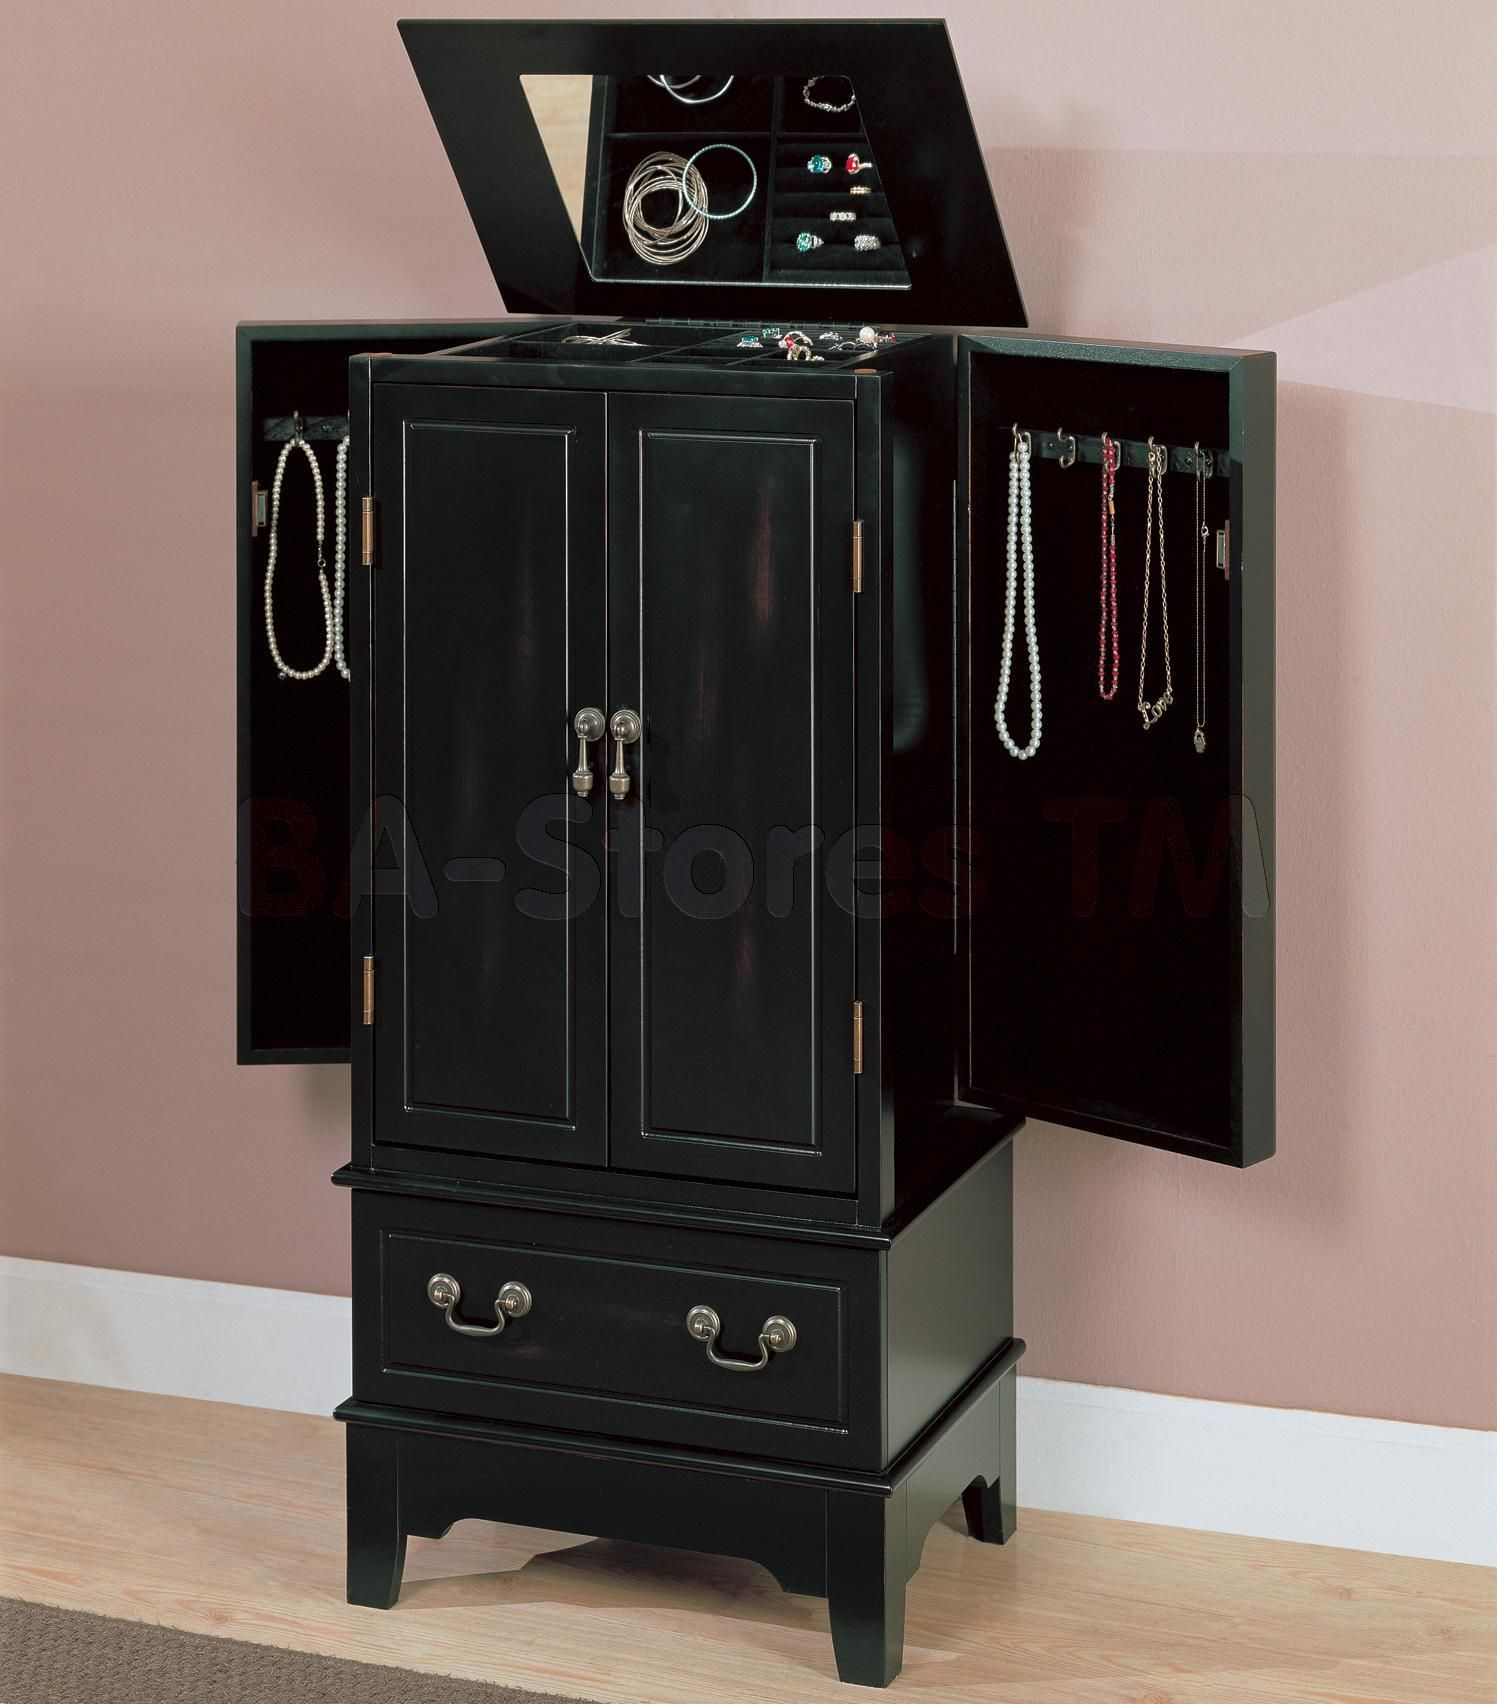 The black jewelry armoire for the dressing room next to the play